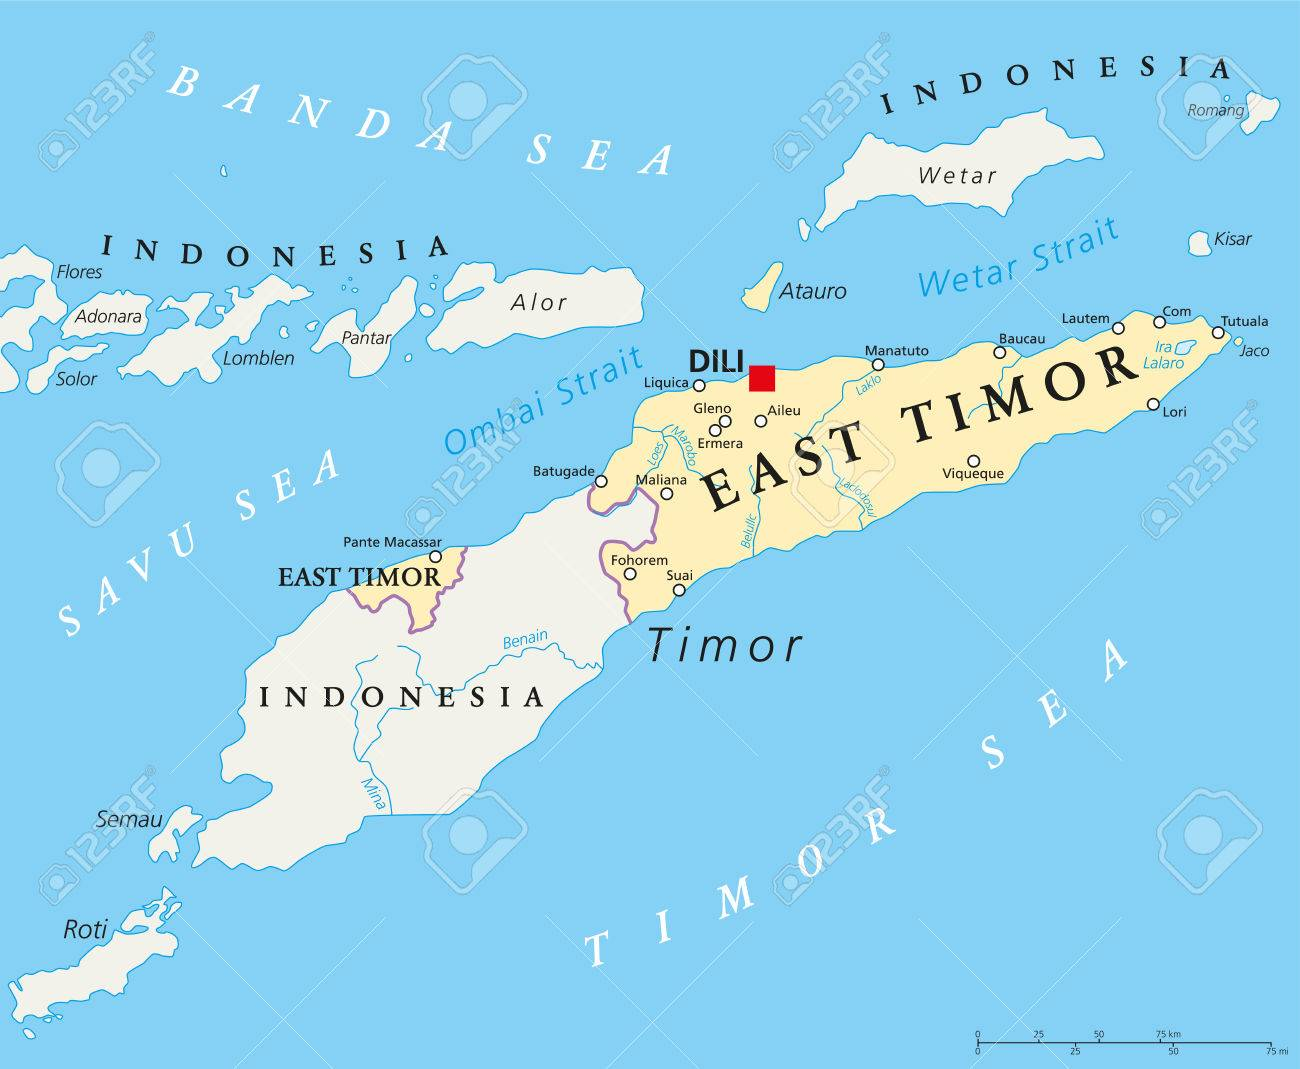 Picture of: East Timor Political Map With Capital Dili National Borders Royalty Free Cliparts Vectors And Stock Illustration Image 59360980